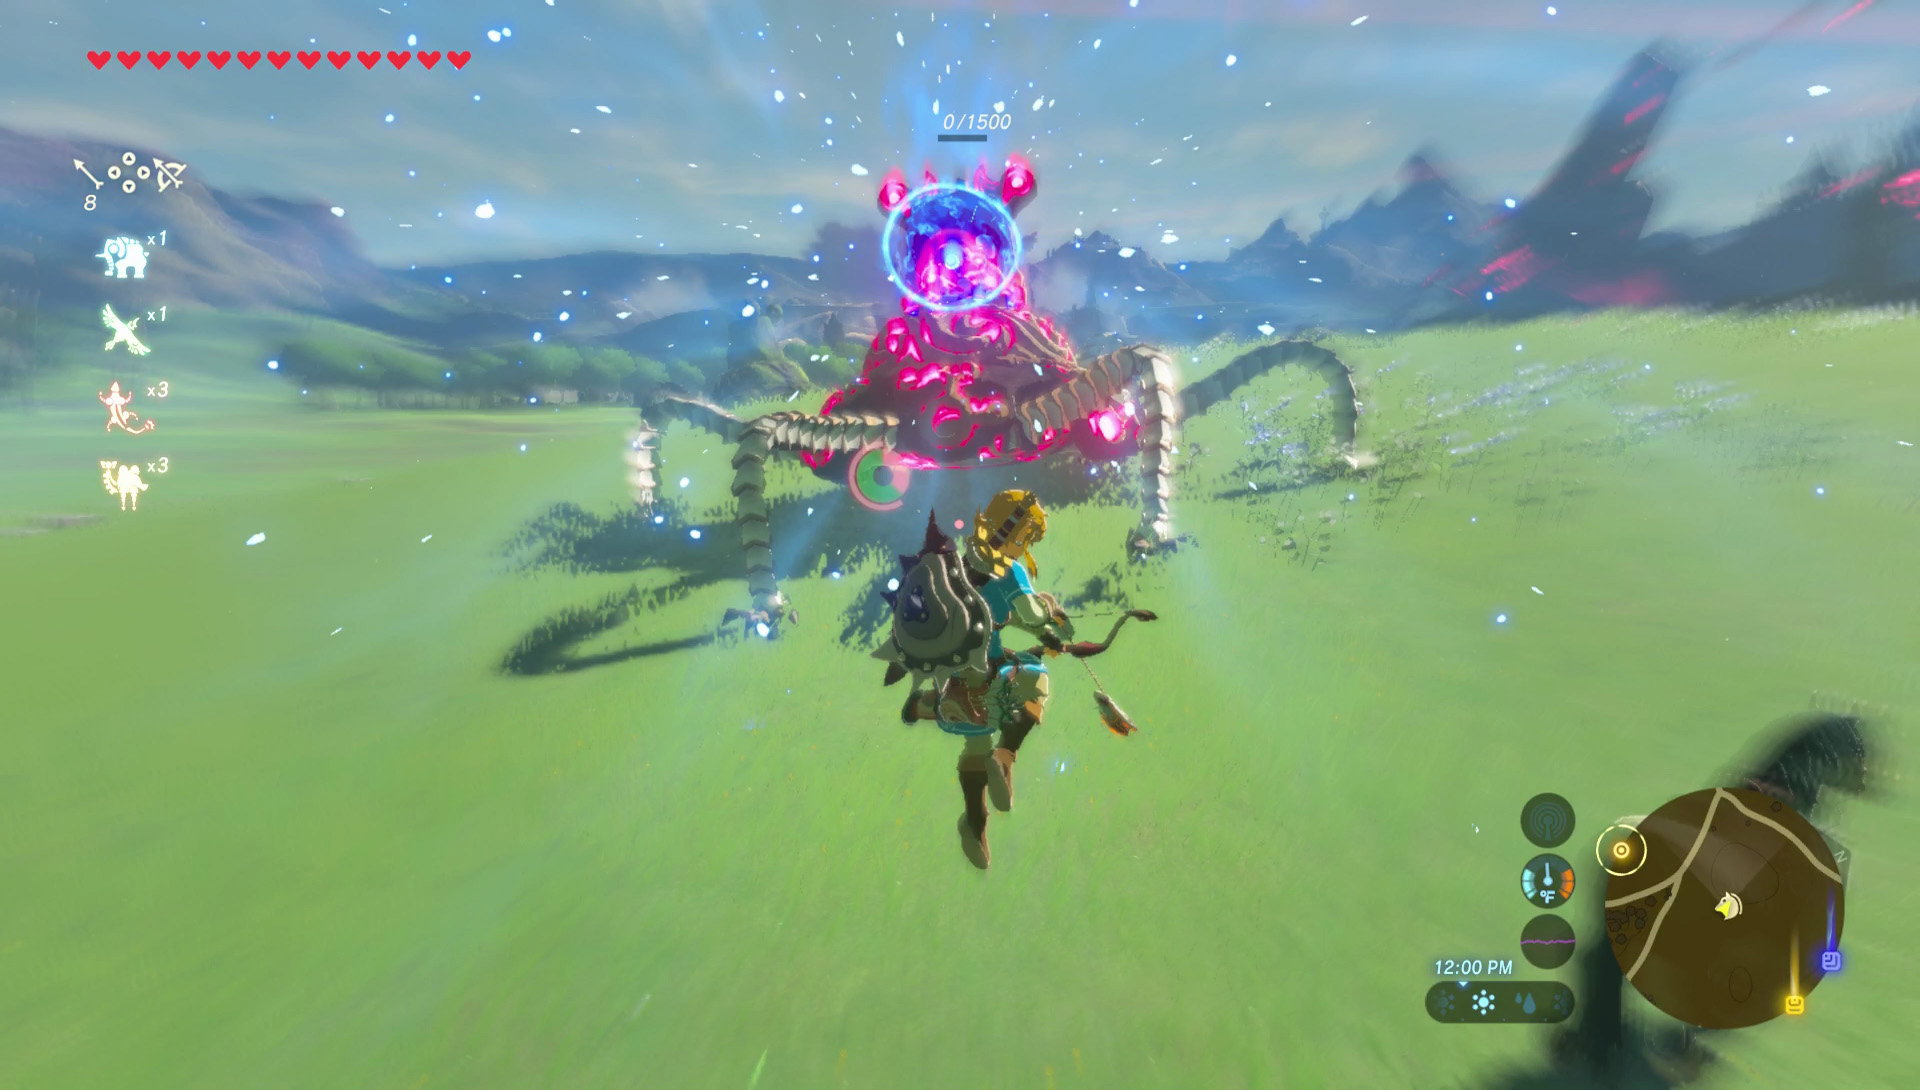 The Legend of Zelda: Breath of the Wild Shouldn't Be This Good | USgamer